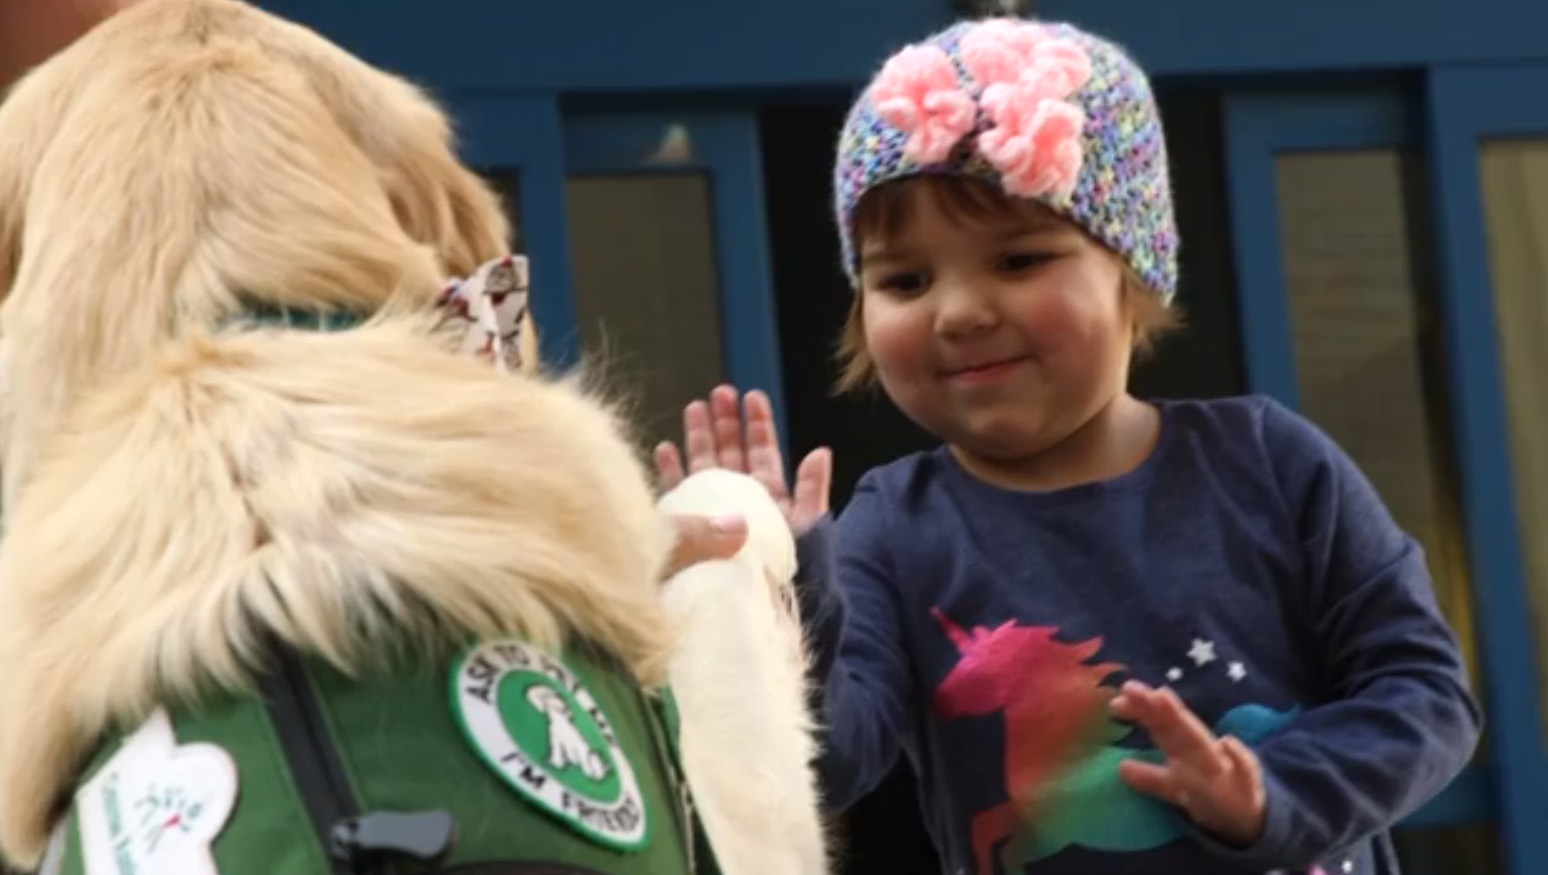 Background on facility dogs and their impact from our partners at Cook Children's Hospital and Canine Assistance.